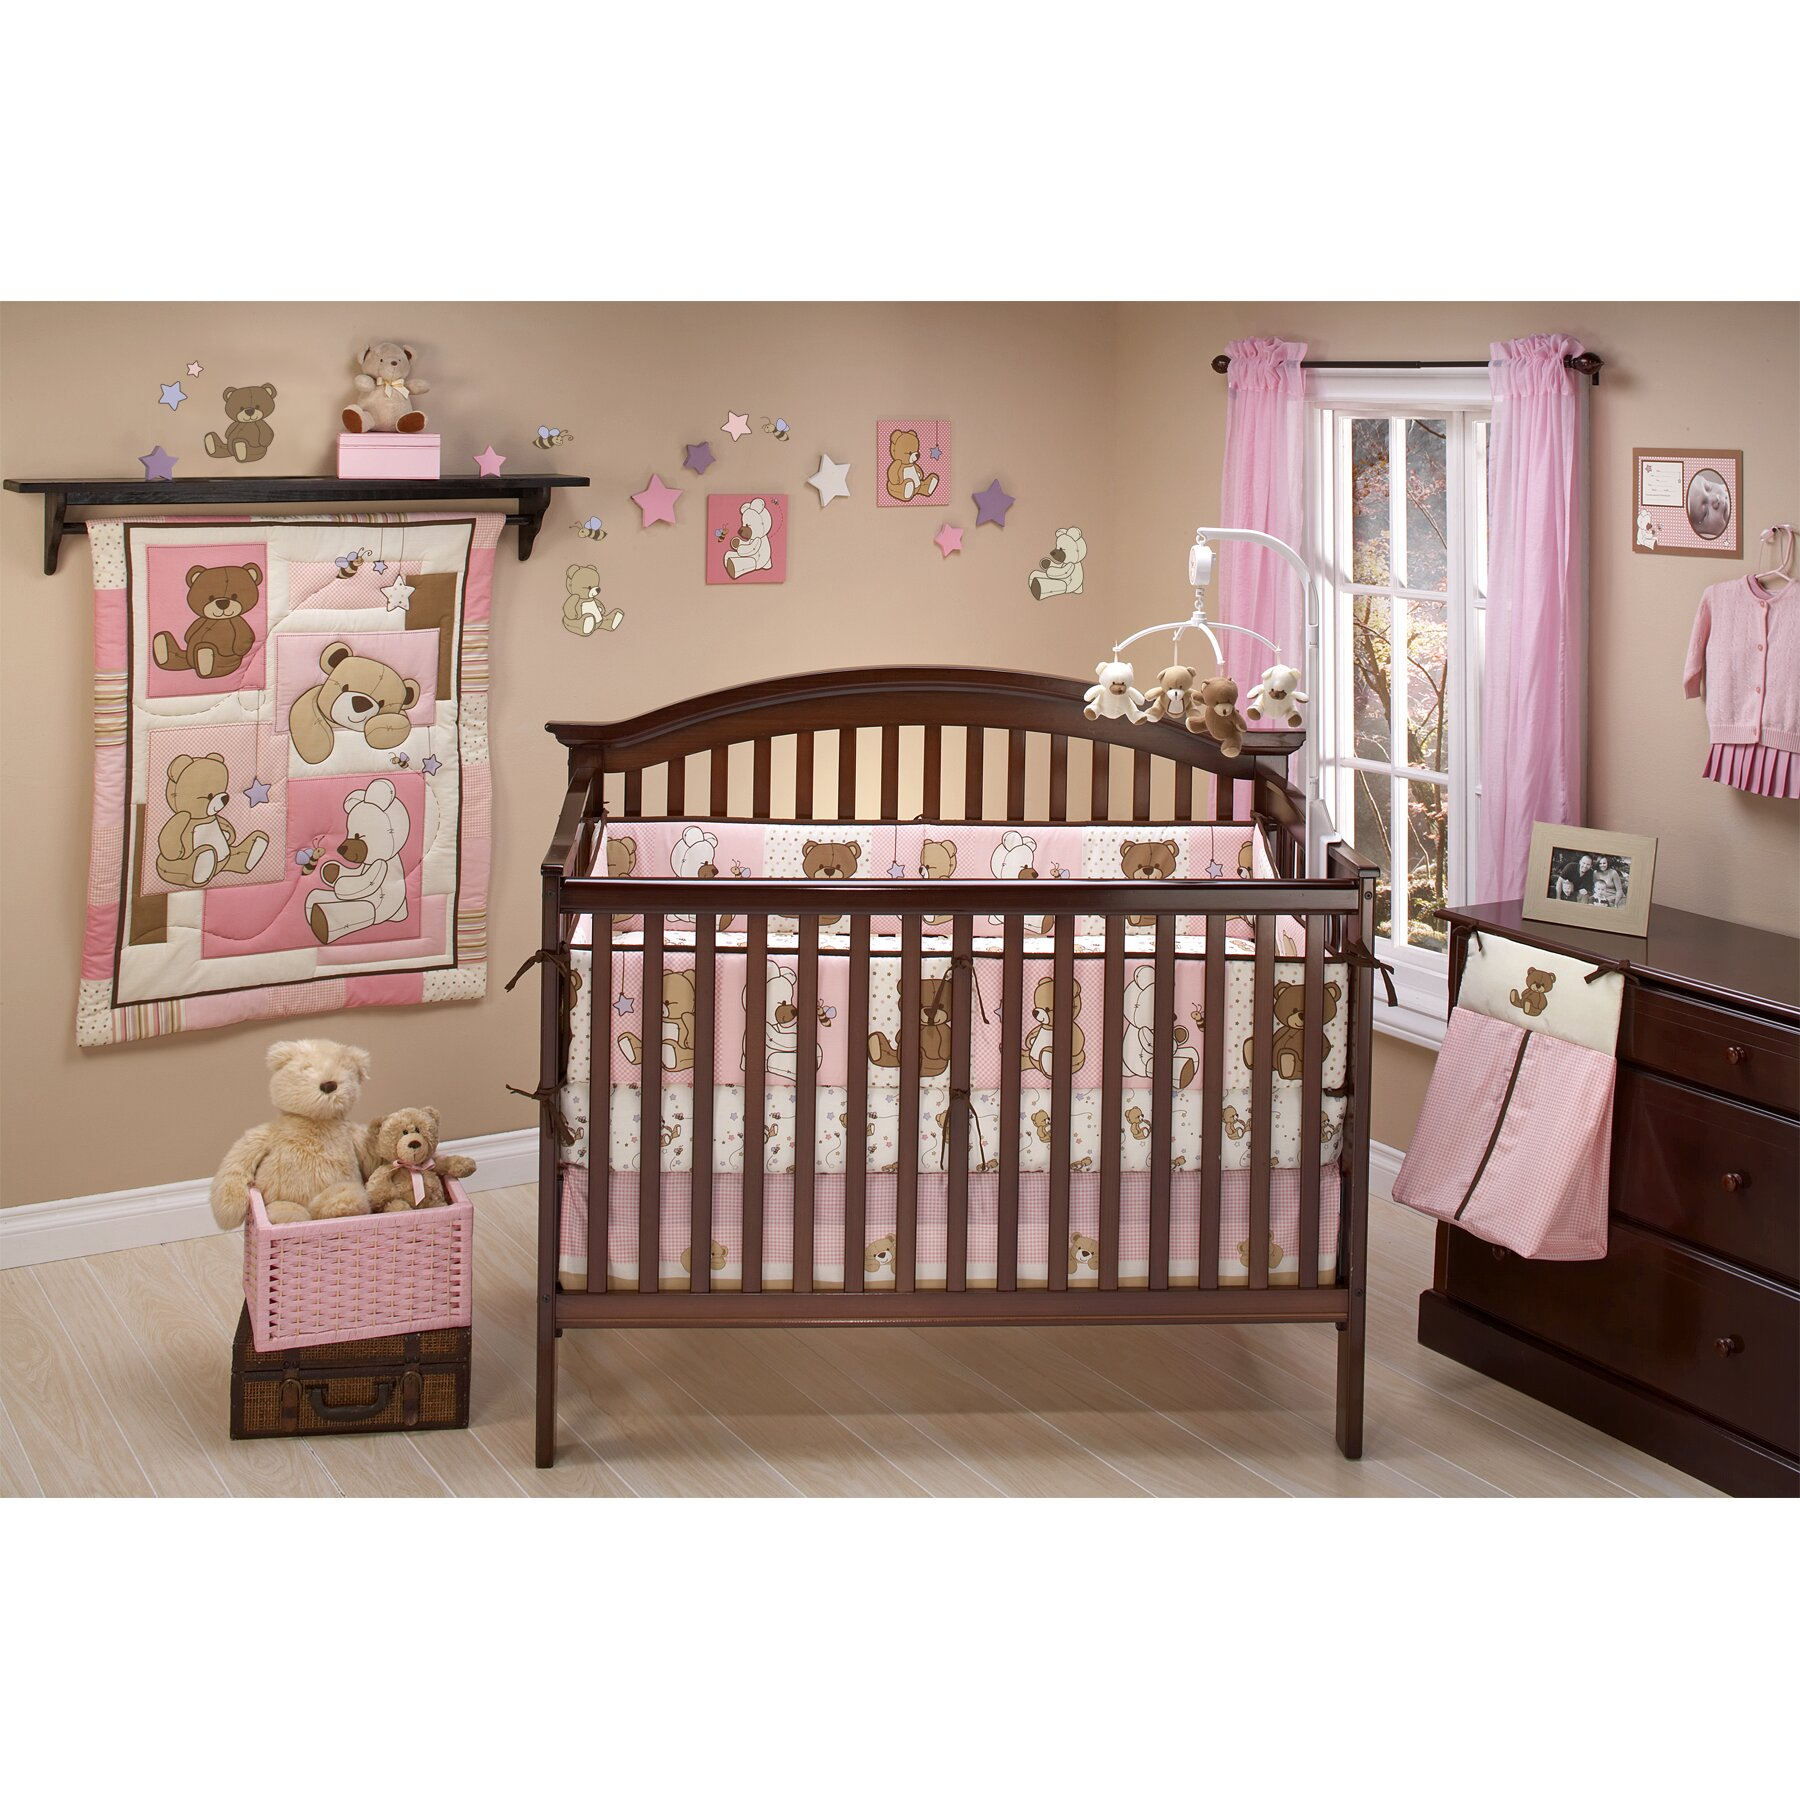 Little Bedding Dreamland Teddy 10 Piece Crib Bedding Set ...